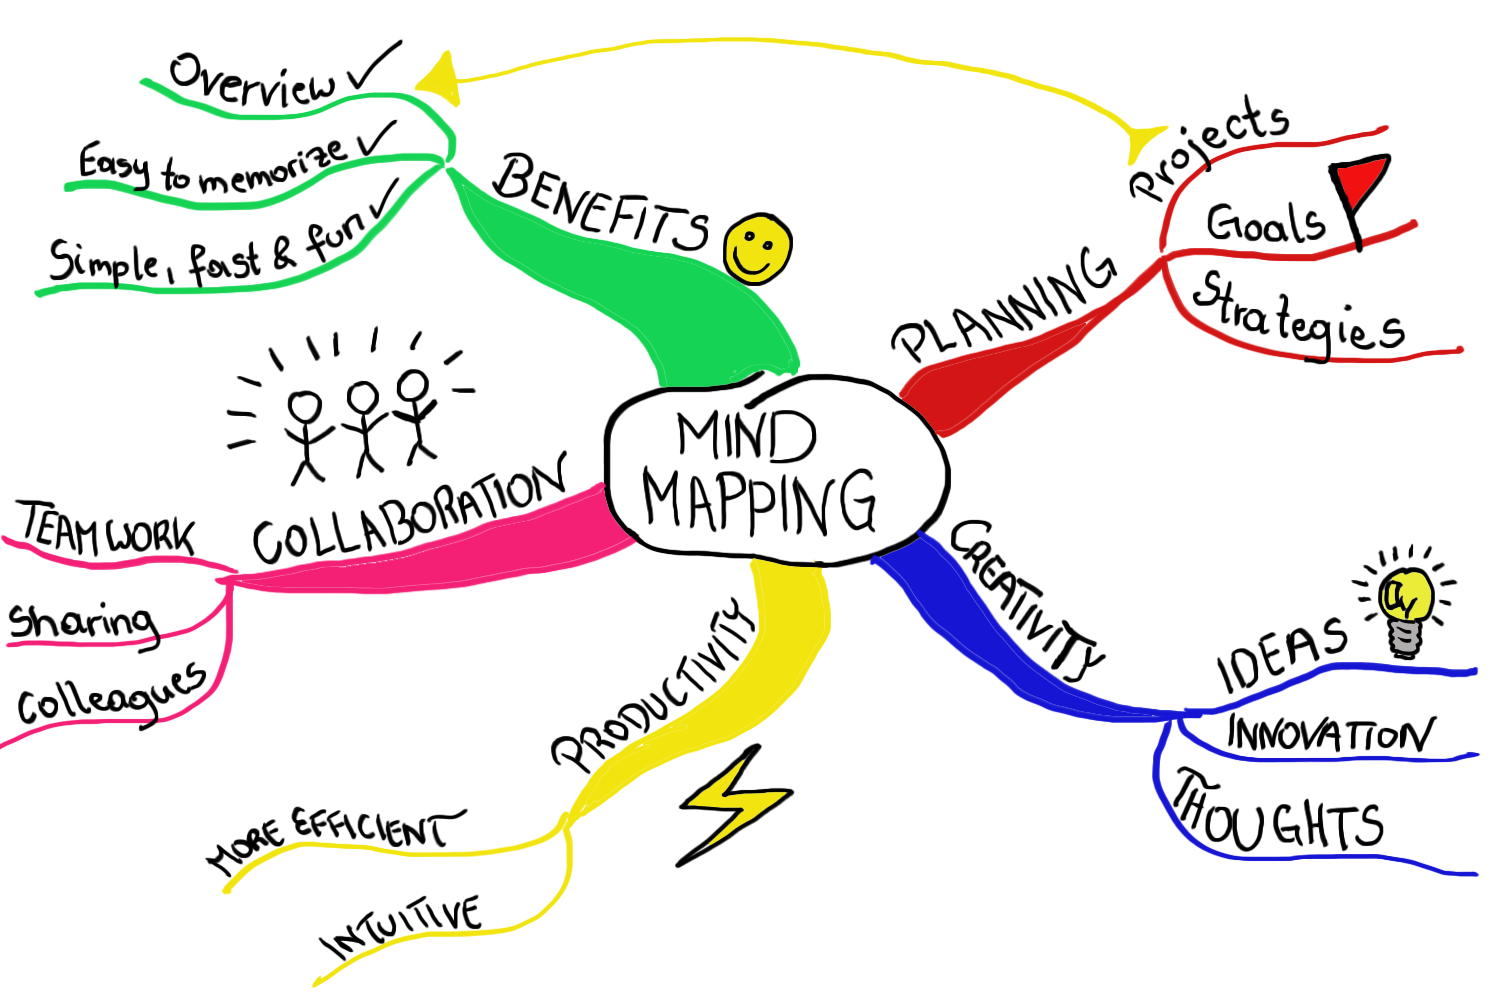 Hand-drawn mind map about mind mapping